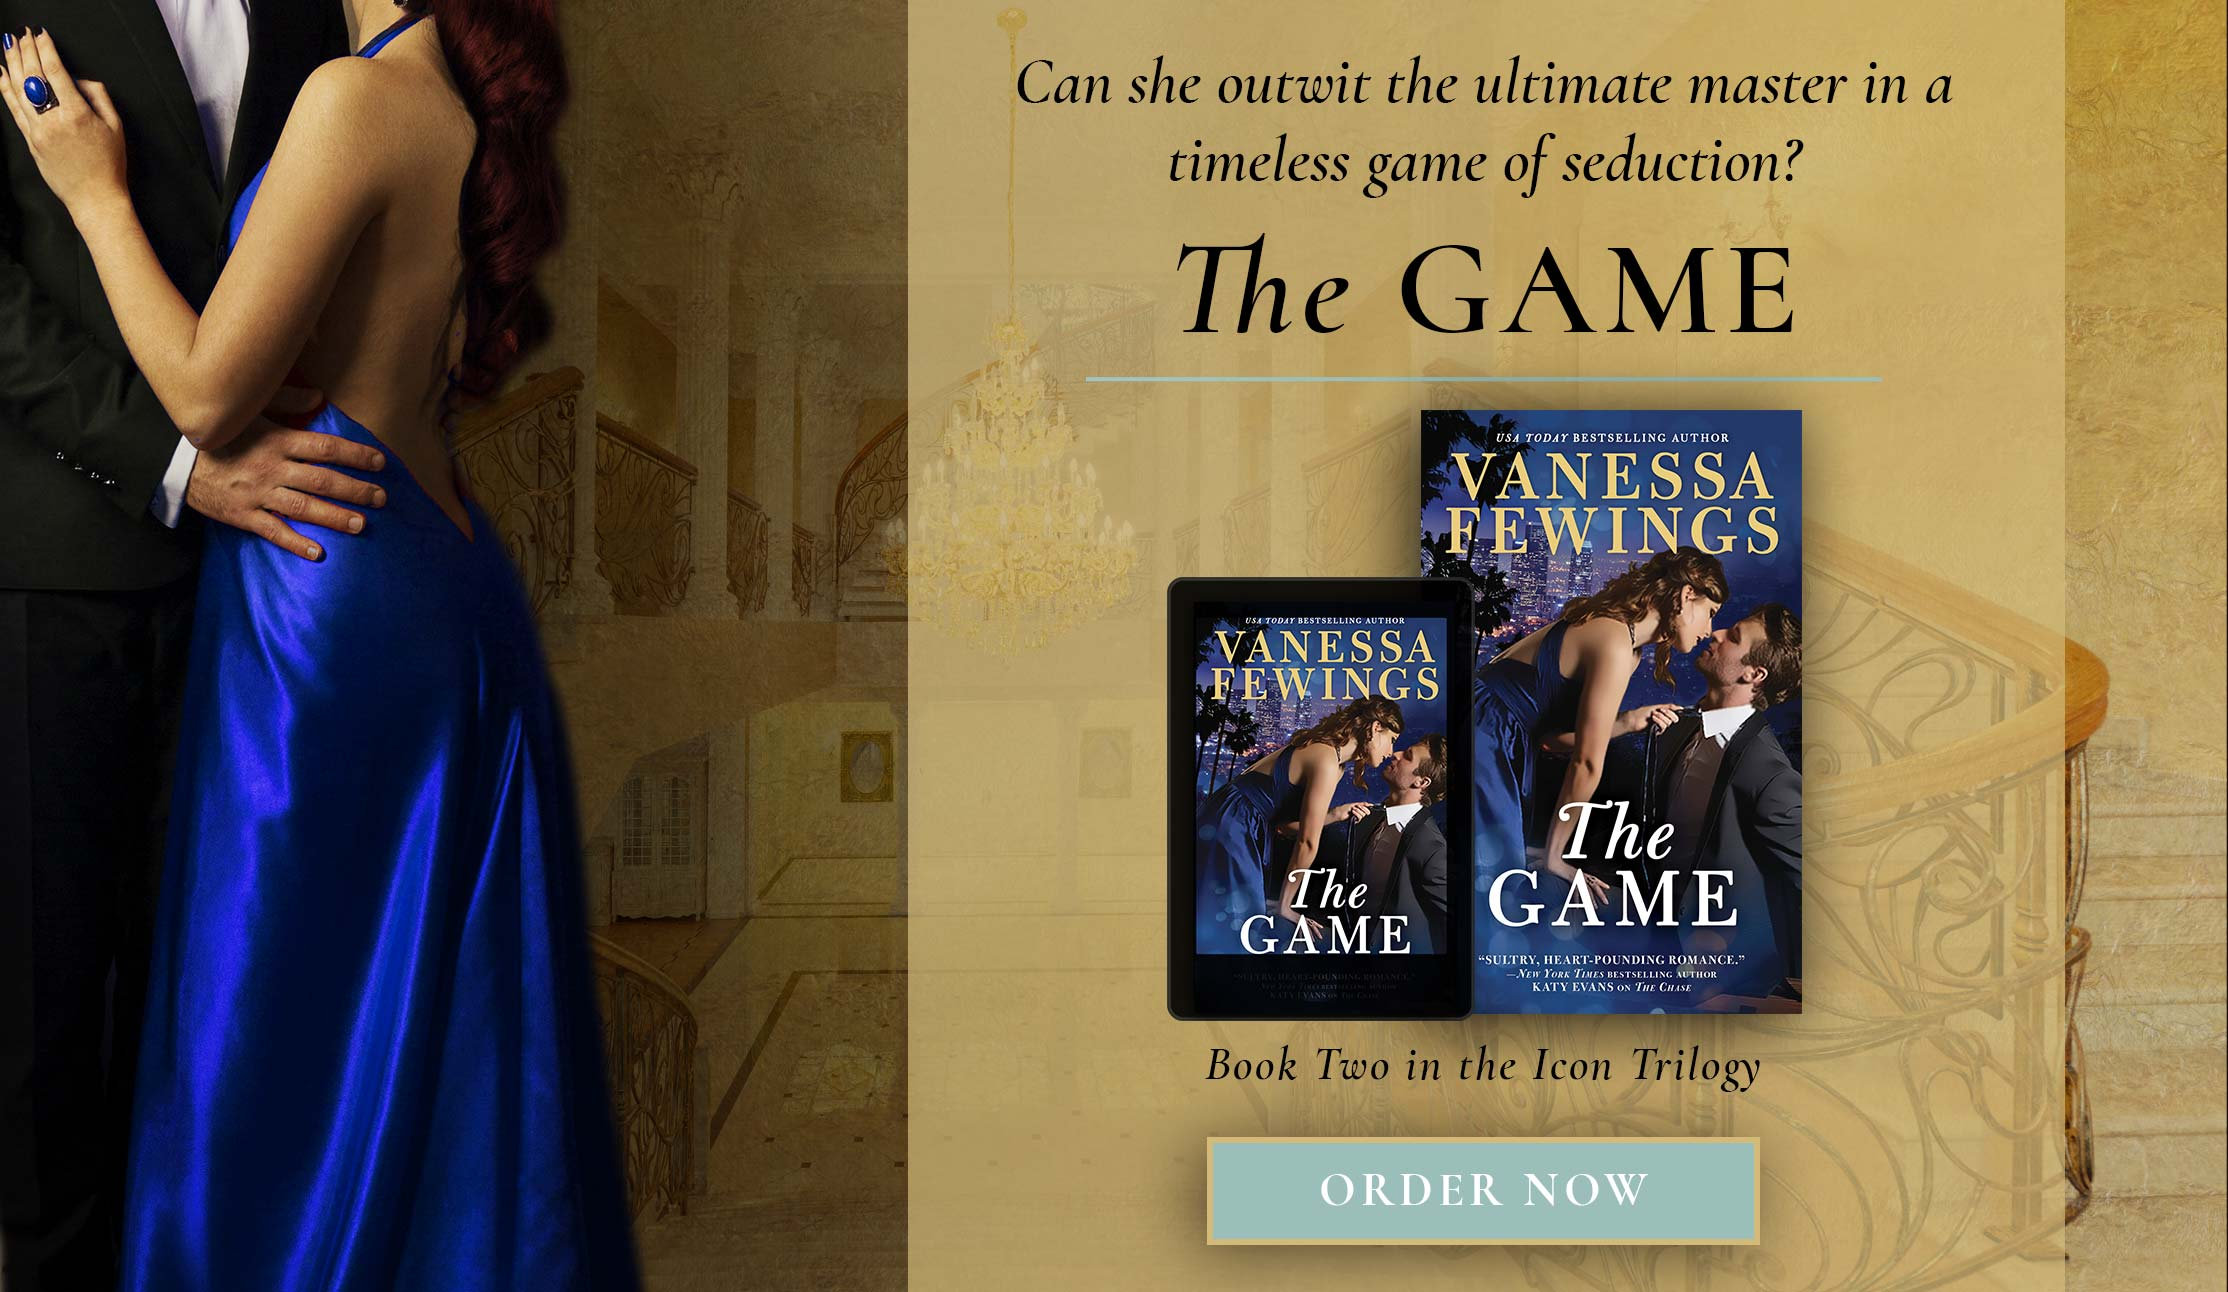 The Game - Book Two in the Icon Trilogy by Vanessa Fewings